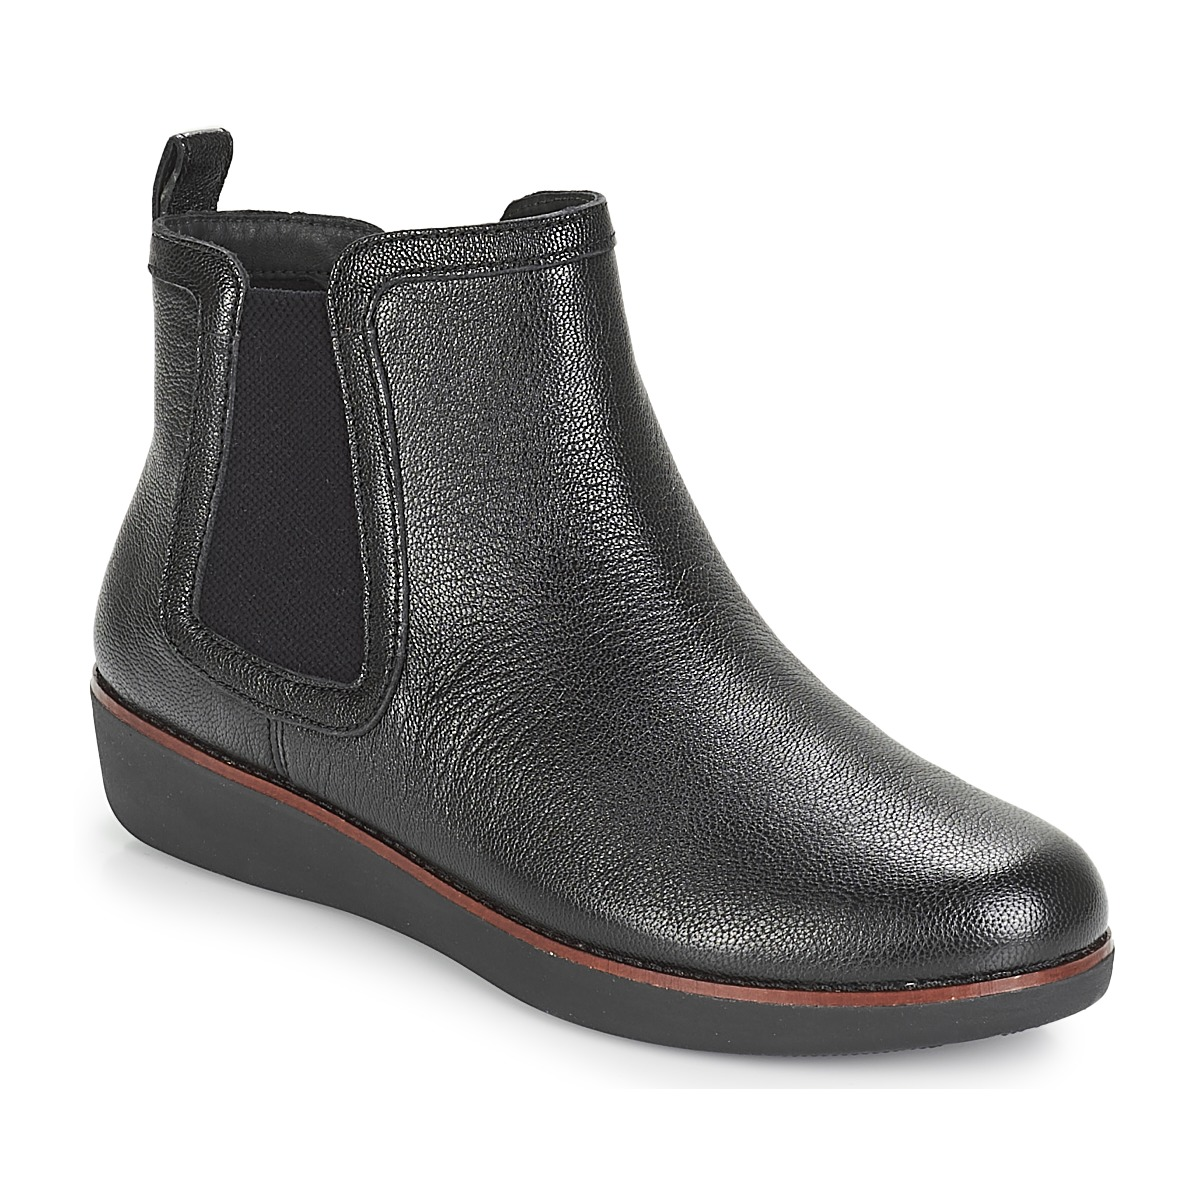 0d88be4a7c87d4 FitFlop CHAI Black - Free delivery with Spartoo UK ! - Shoes Mid boots Women  £ 87.75